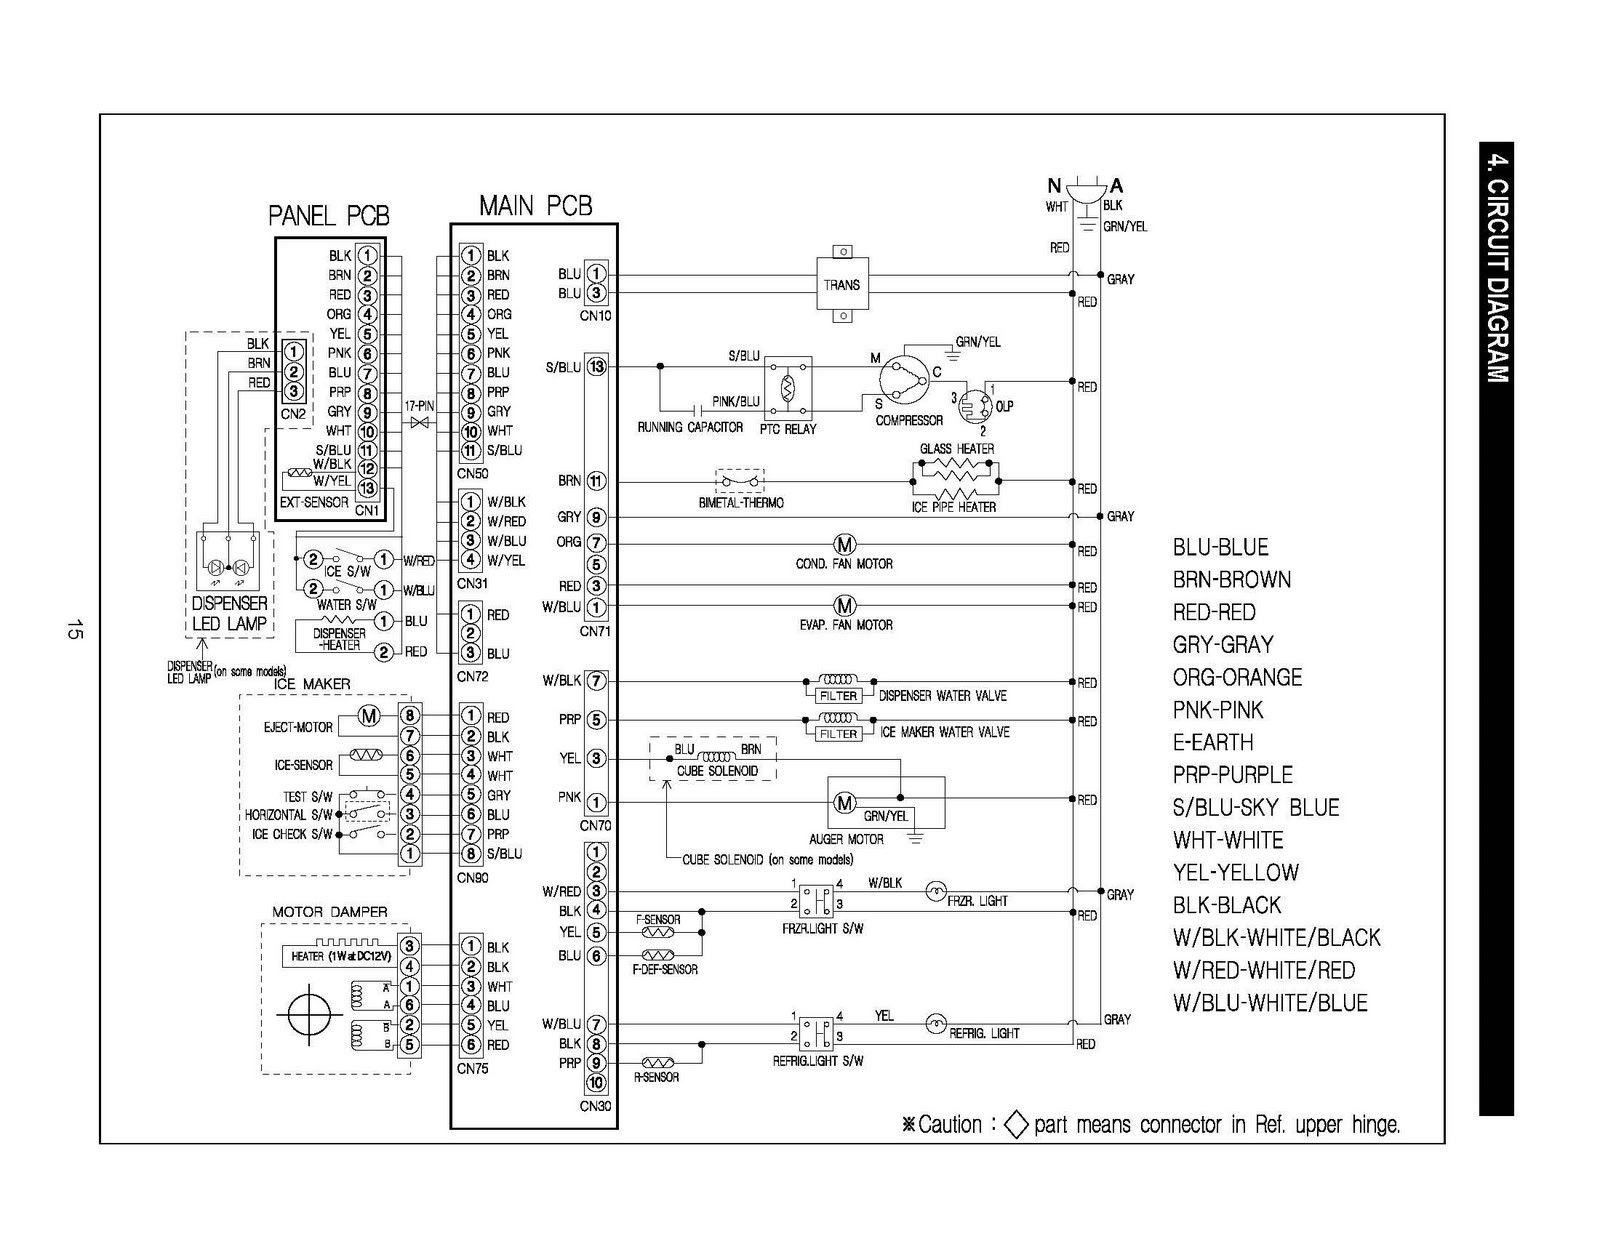 Ge Refrigerator Wire Diagram - Wiring Diagram & Cable Management on